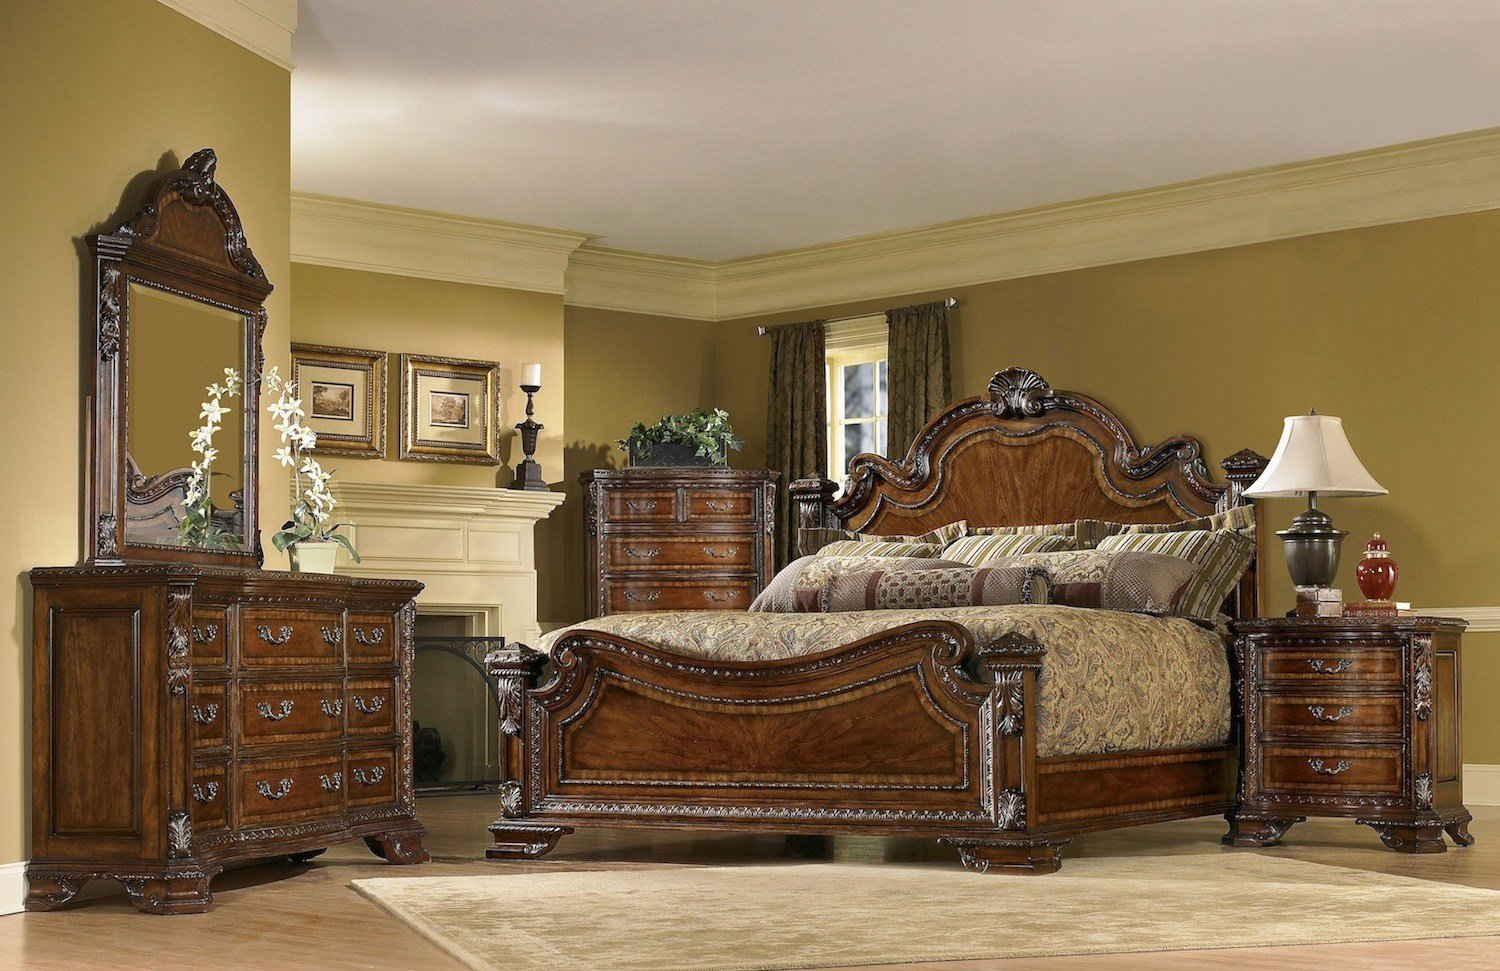 Best Old World 5 Piece King Traditional European Style Bedroom Furniture Set 143000 Ebay With Pictures Original 1024 x 768